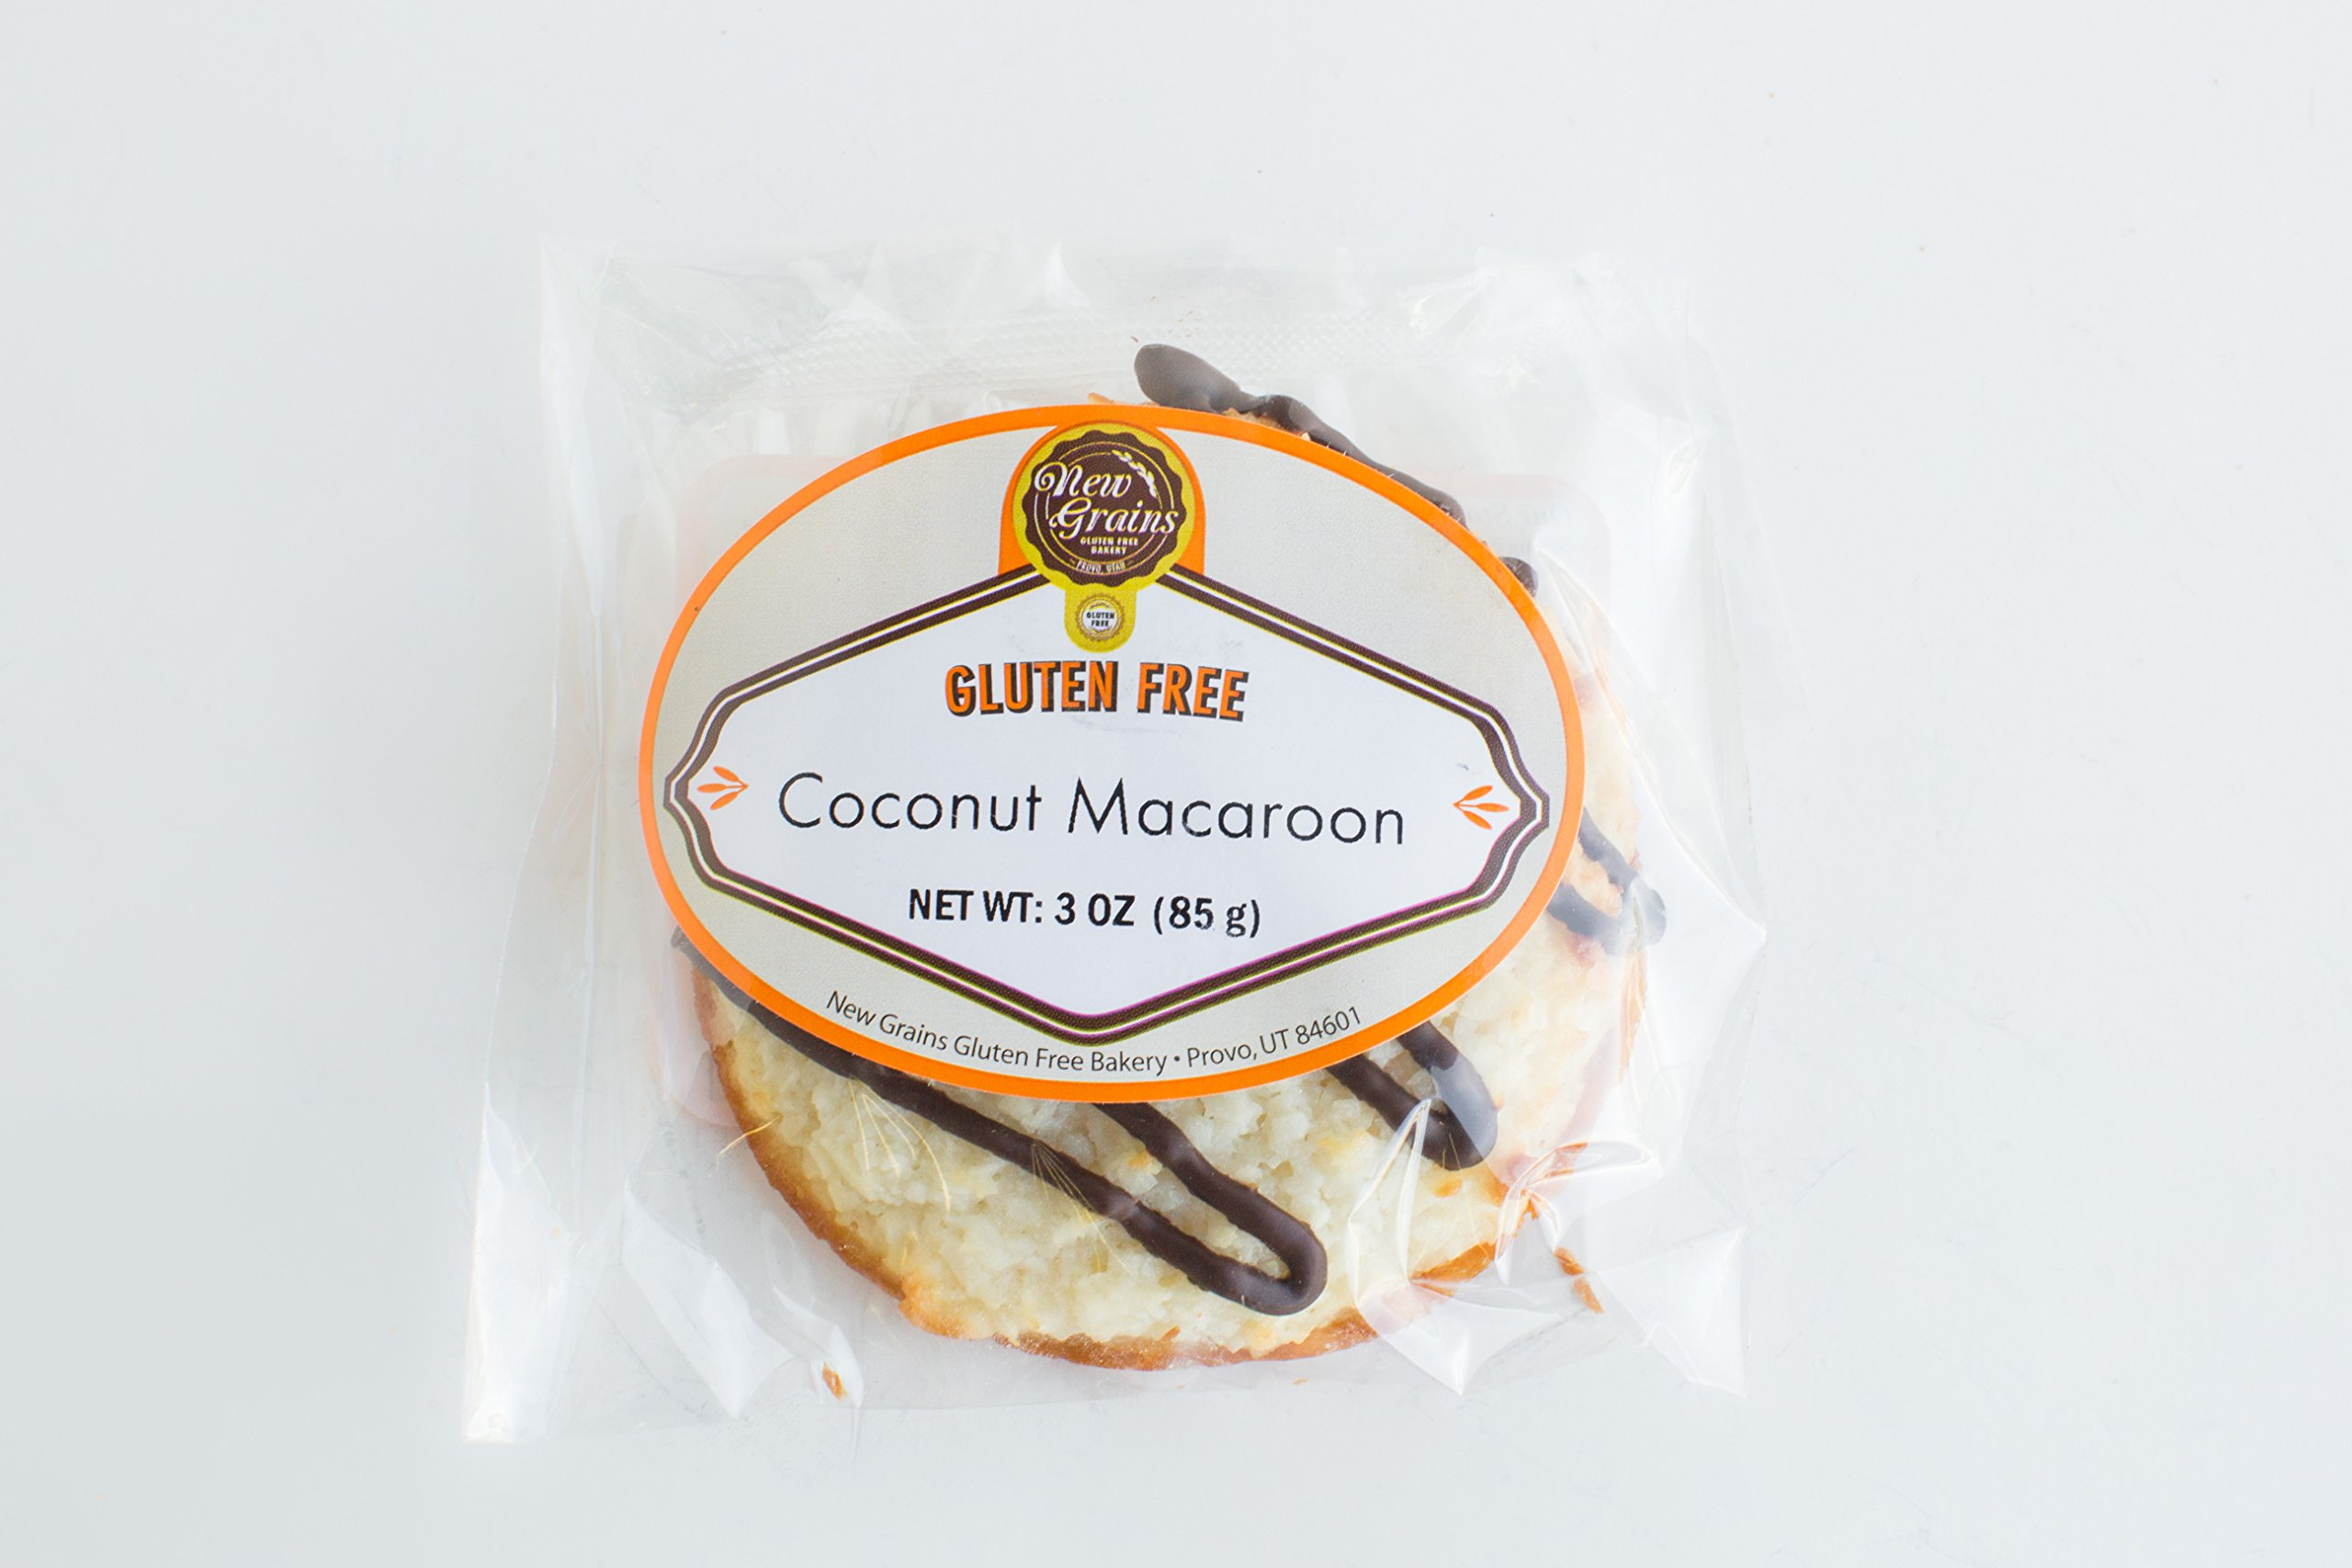 New Grains Gluten Free Coconut Macaroons Cookies 10 Pack by New Grains Gluten Free Bakery